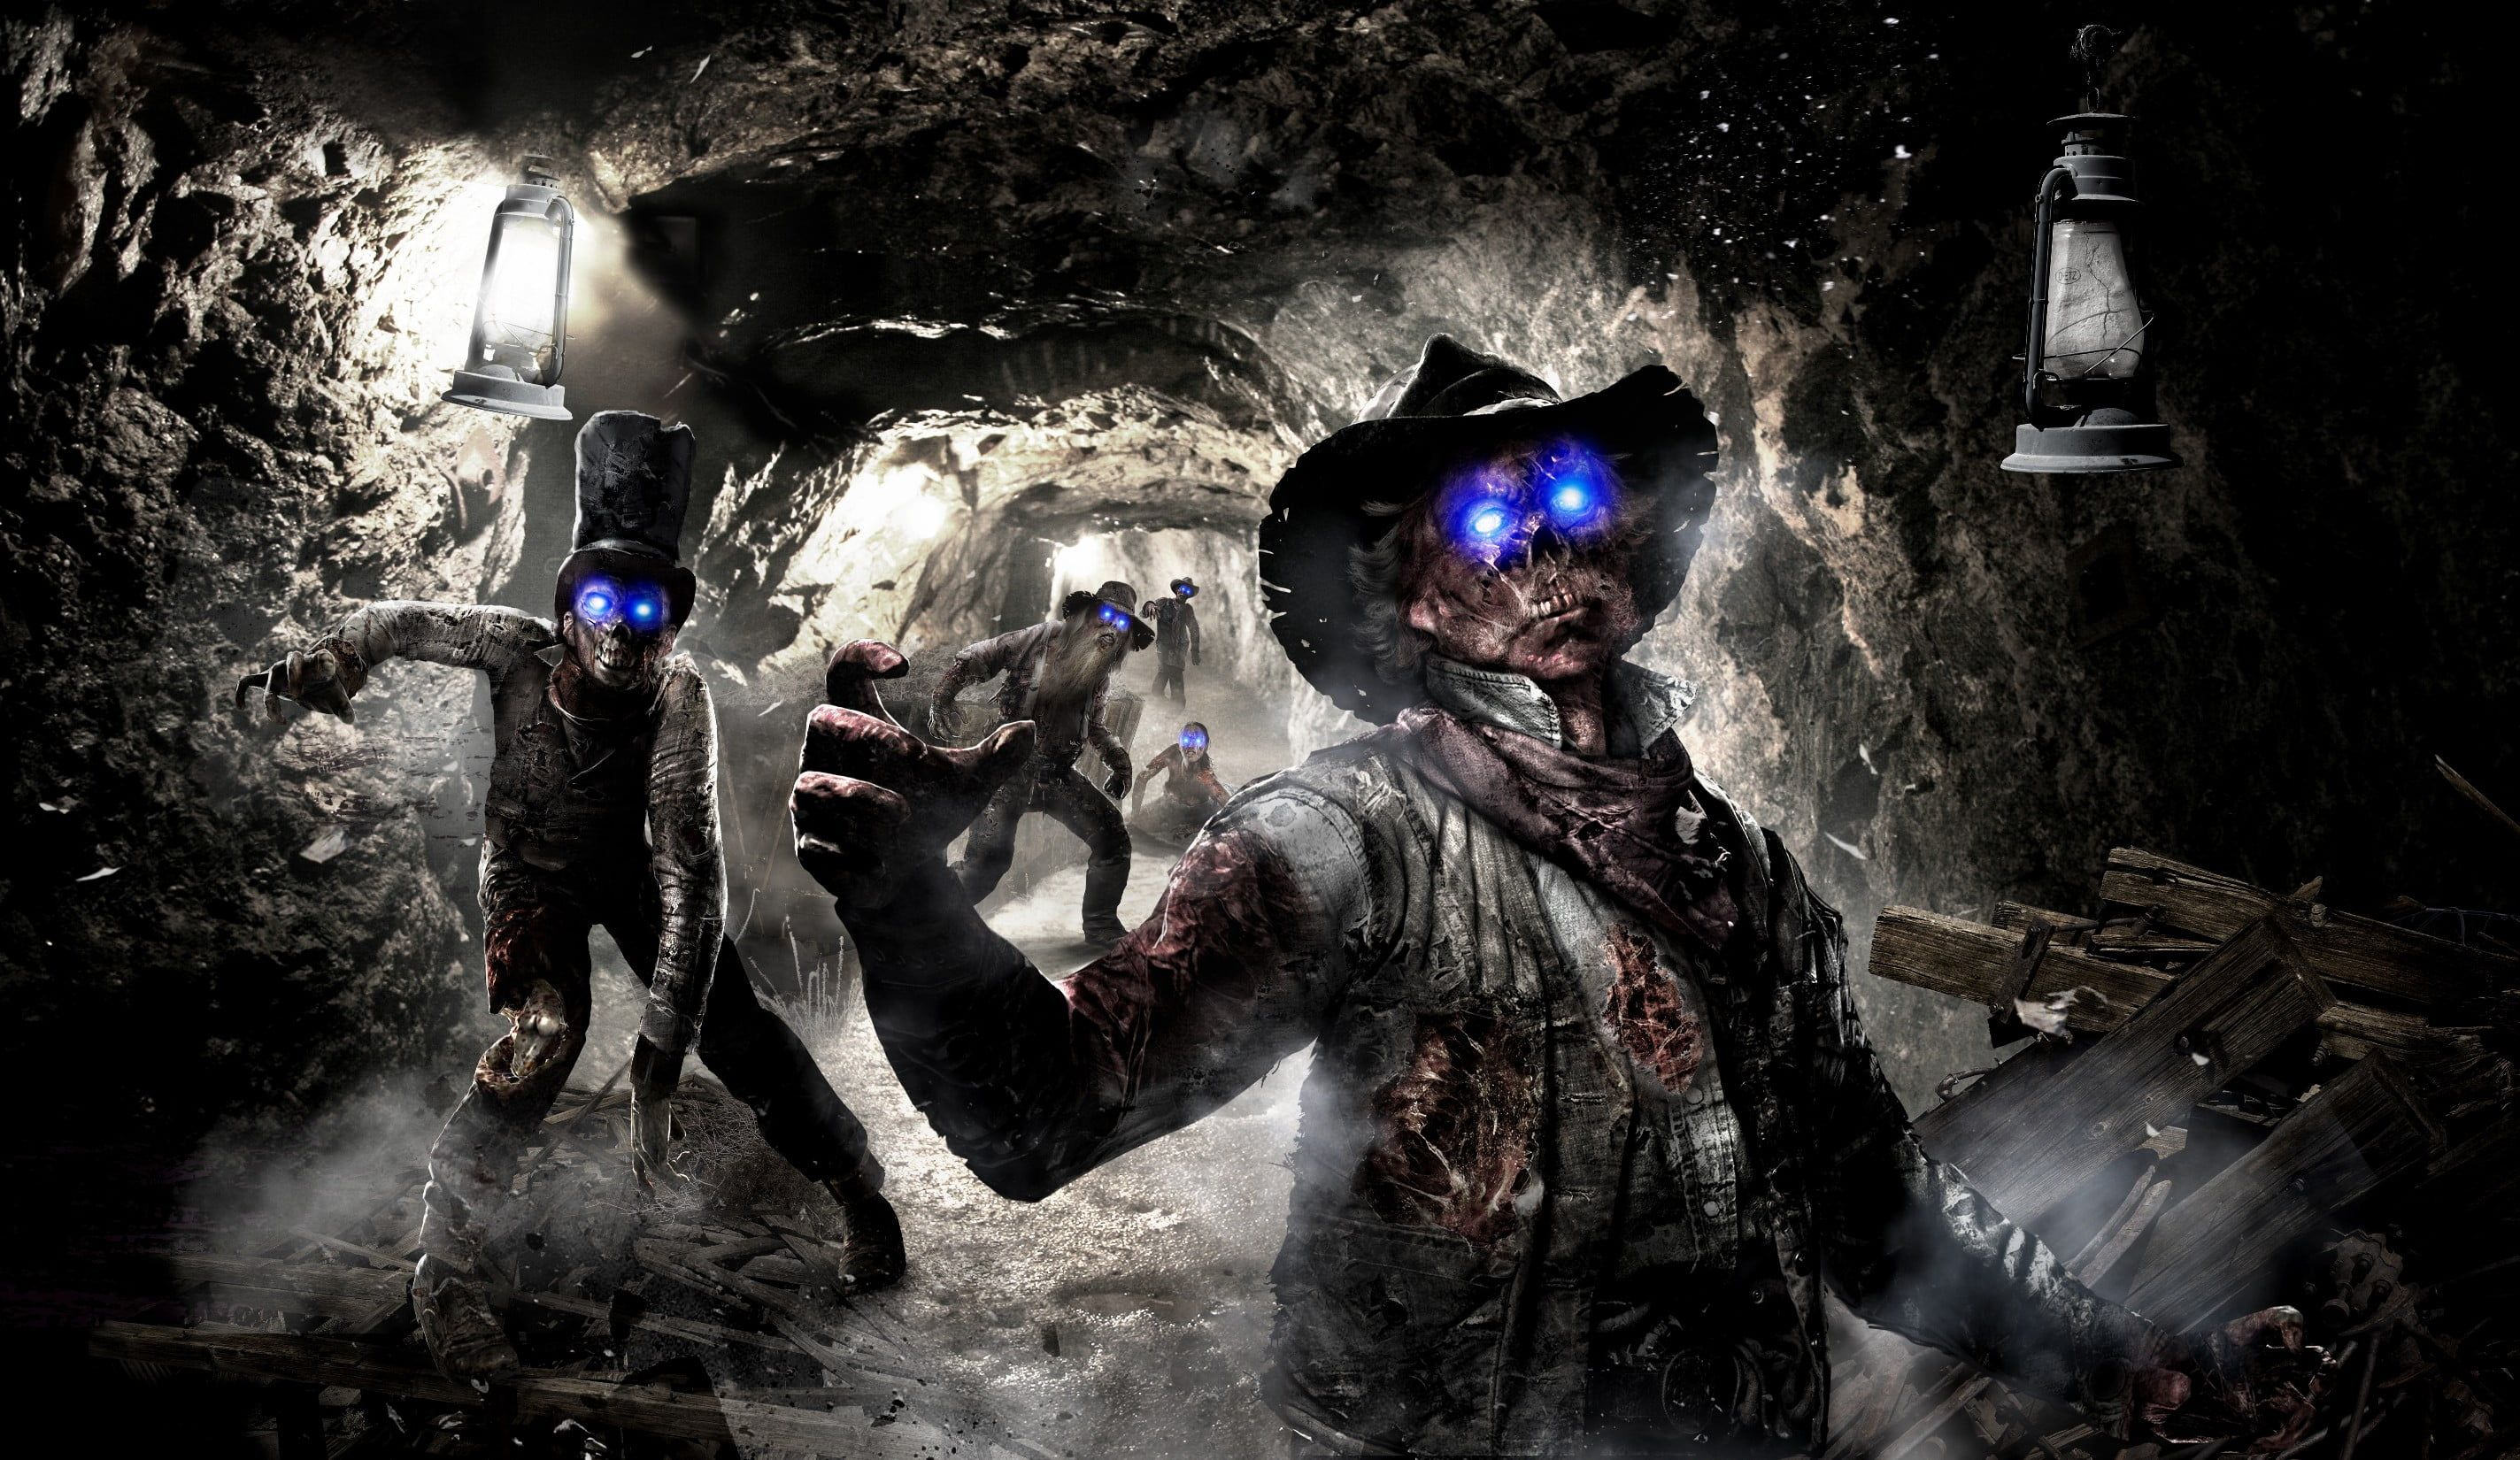 Zombies Wallpaper Video Games Call Of Duty Black Ops Ii Call Of Duty 2k Wallpaper Hdwallpaper Desk Zombie Wallpaper Call Of Duty Zombies Black Ops Zombies